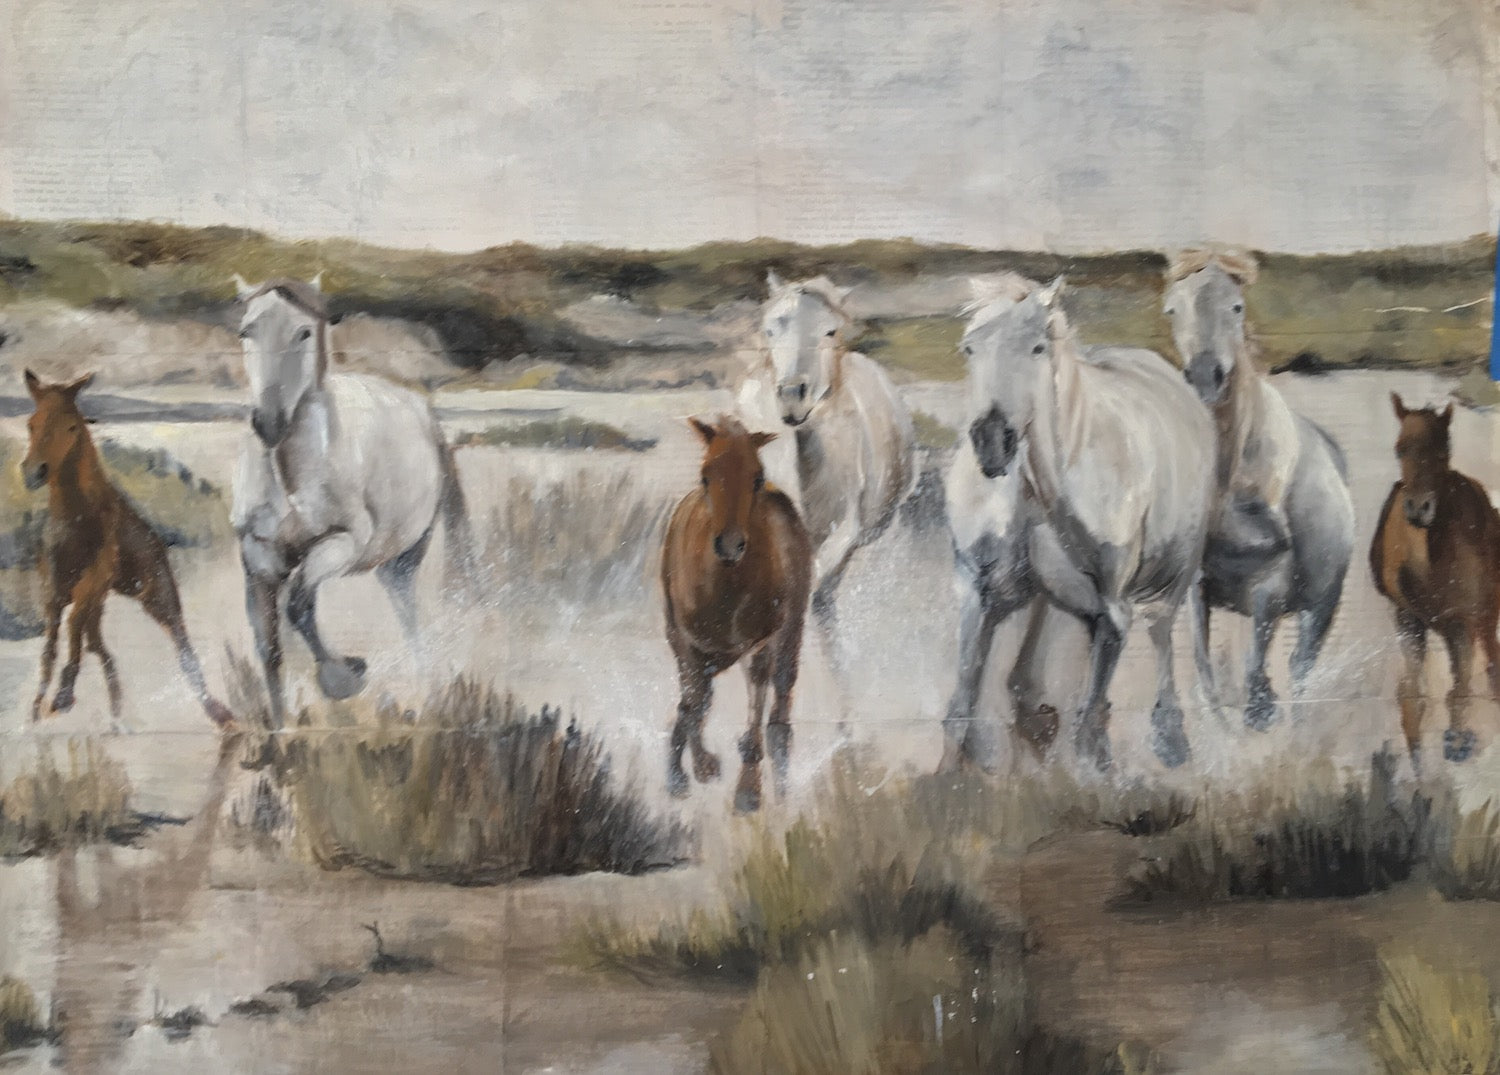 Original mixed media of a herd of Camarguais wild horses galloping in the Camargue region of France.